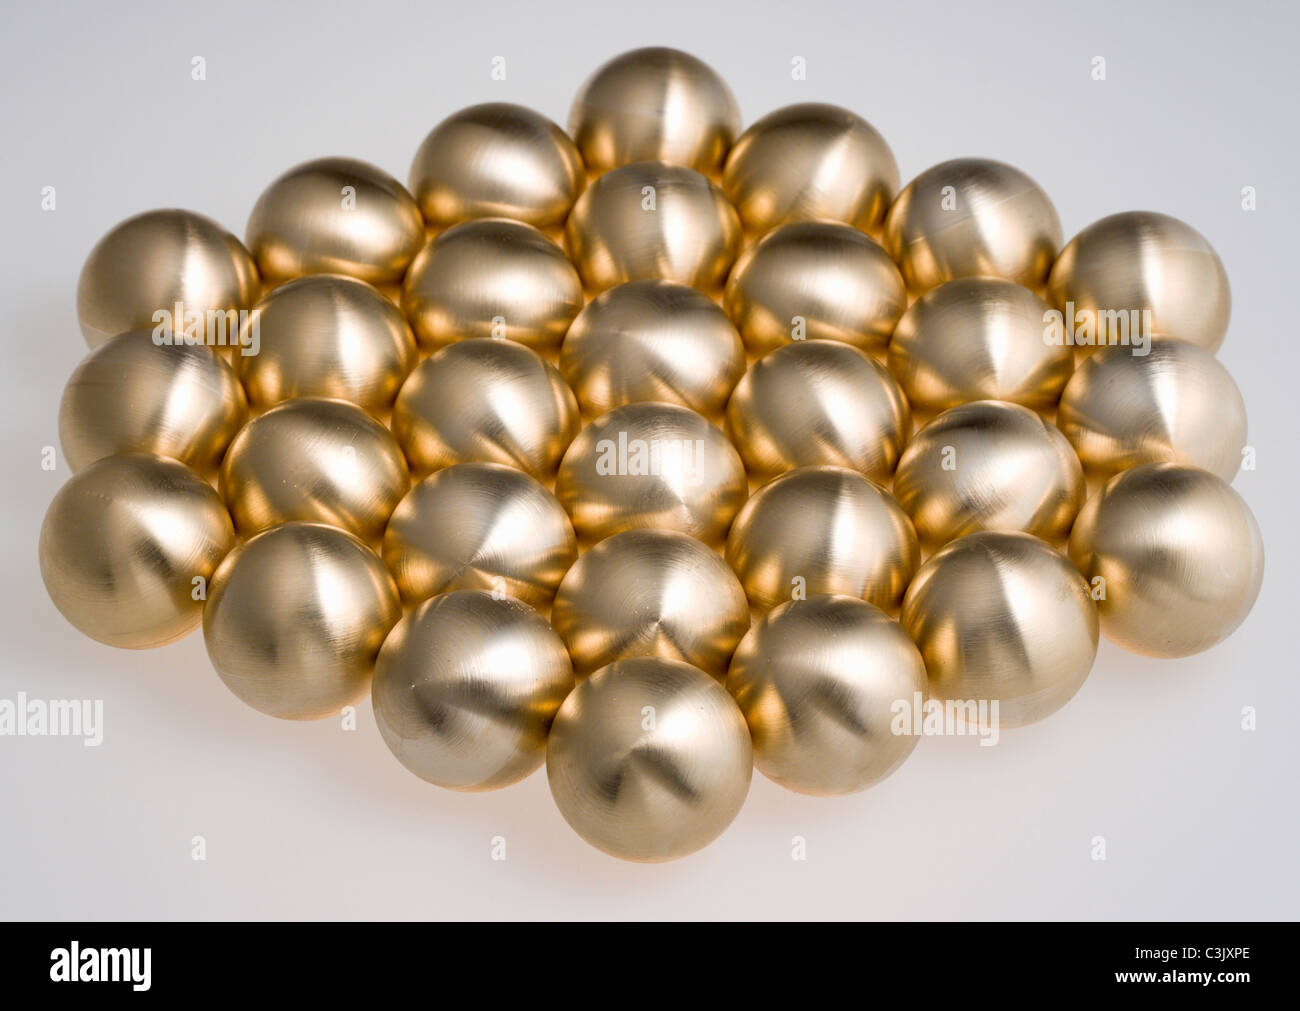 Hexagon shape is made using ball bearing on white background - Stock Image